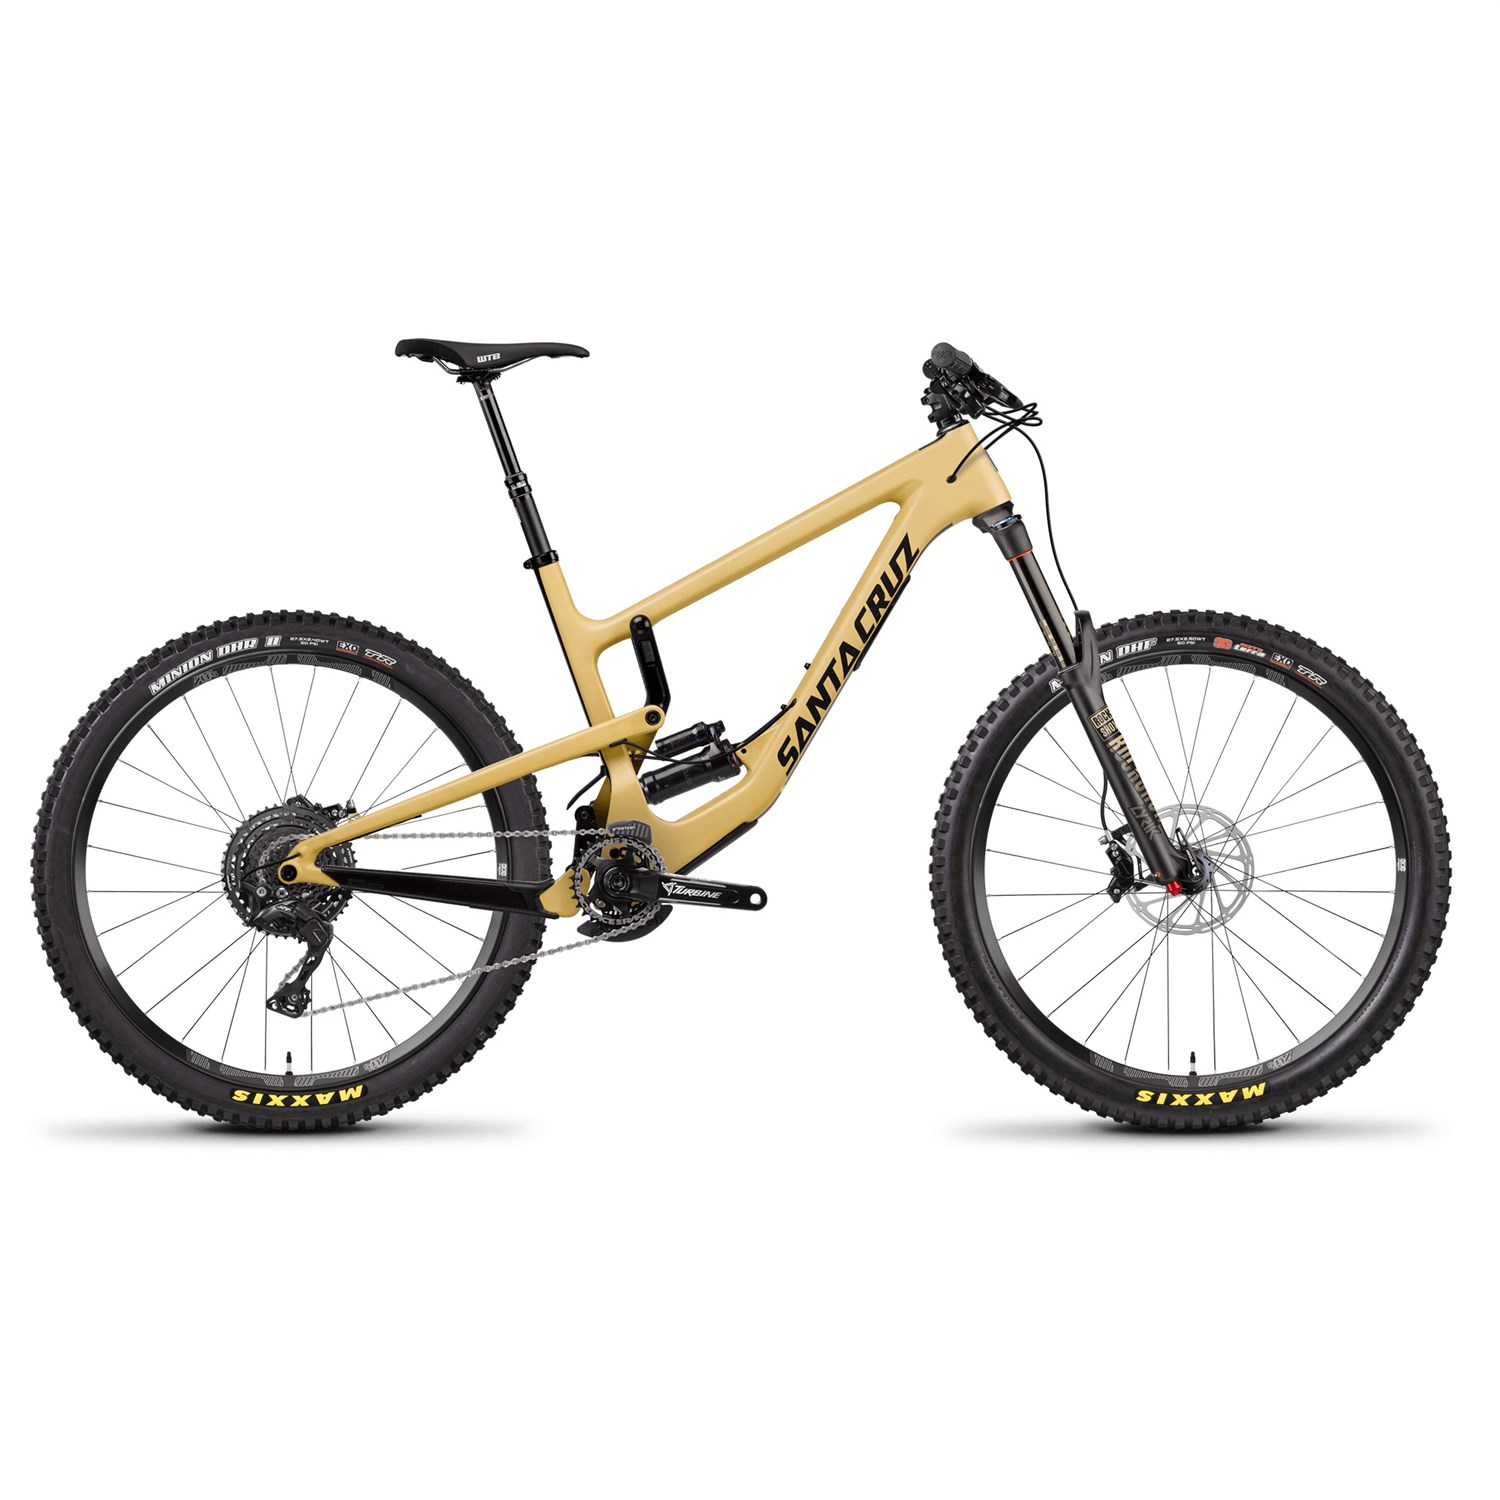 Bicicletas tuning car tuning - Santa Cruz Bicycles Nomad 4 C Xe Complete Mountain Bike 2018 5 899 00 Available In Store Only